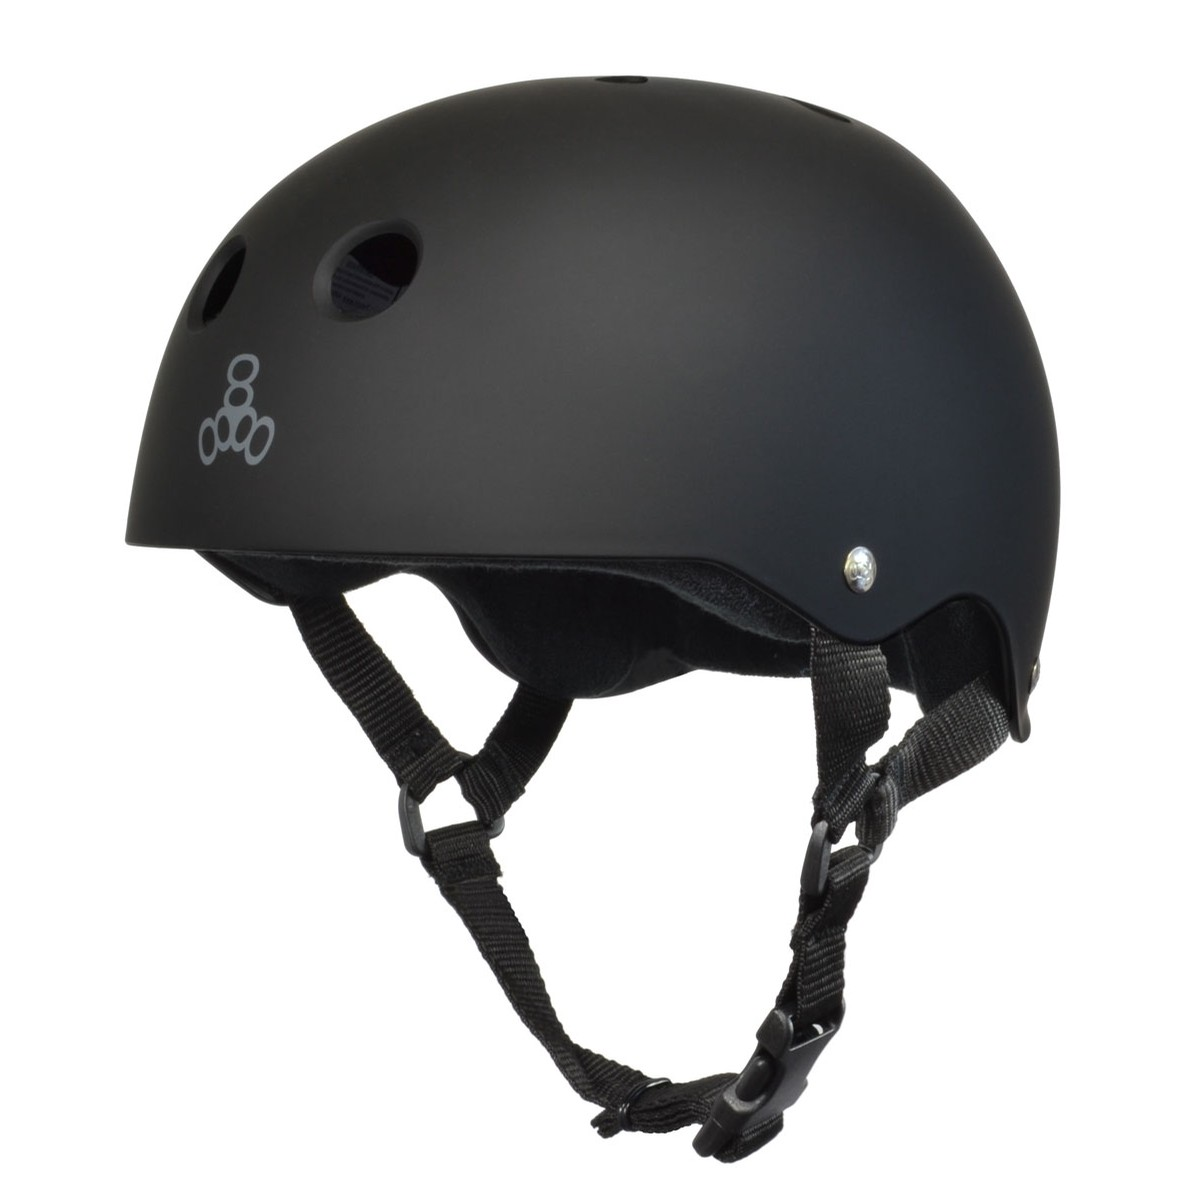 Sweatsaver Helmet (All Black Rubber)